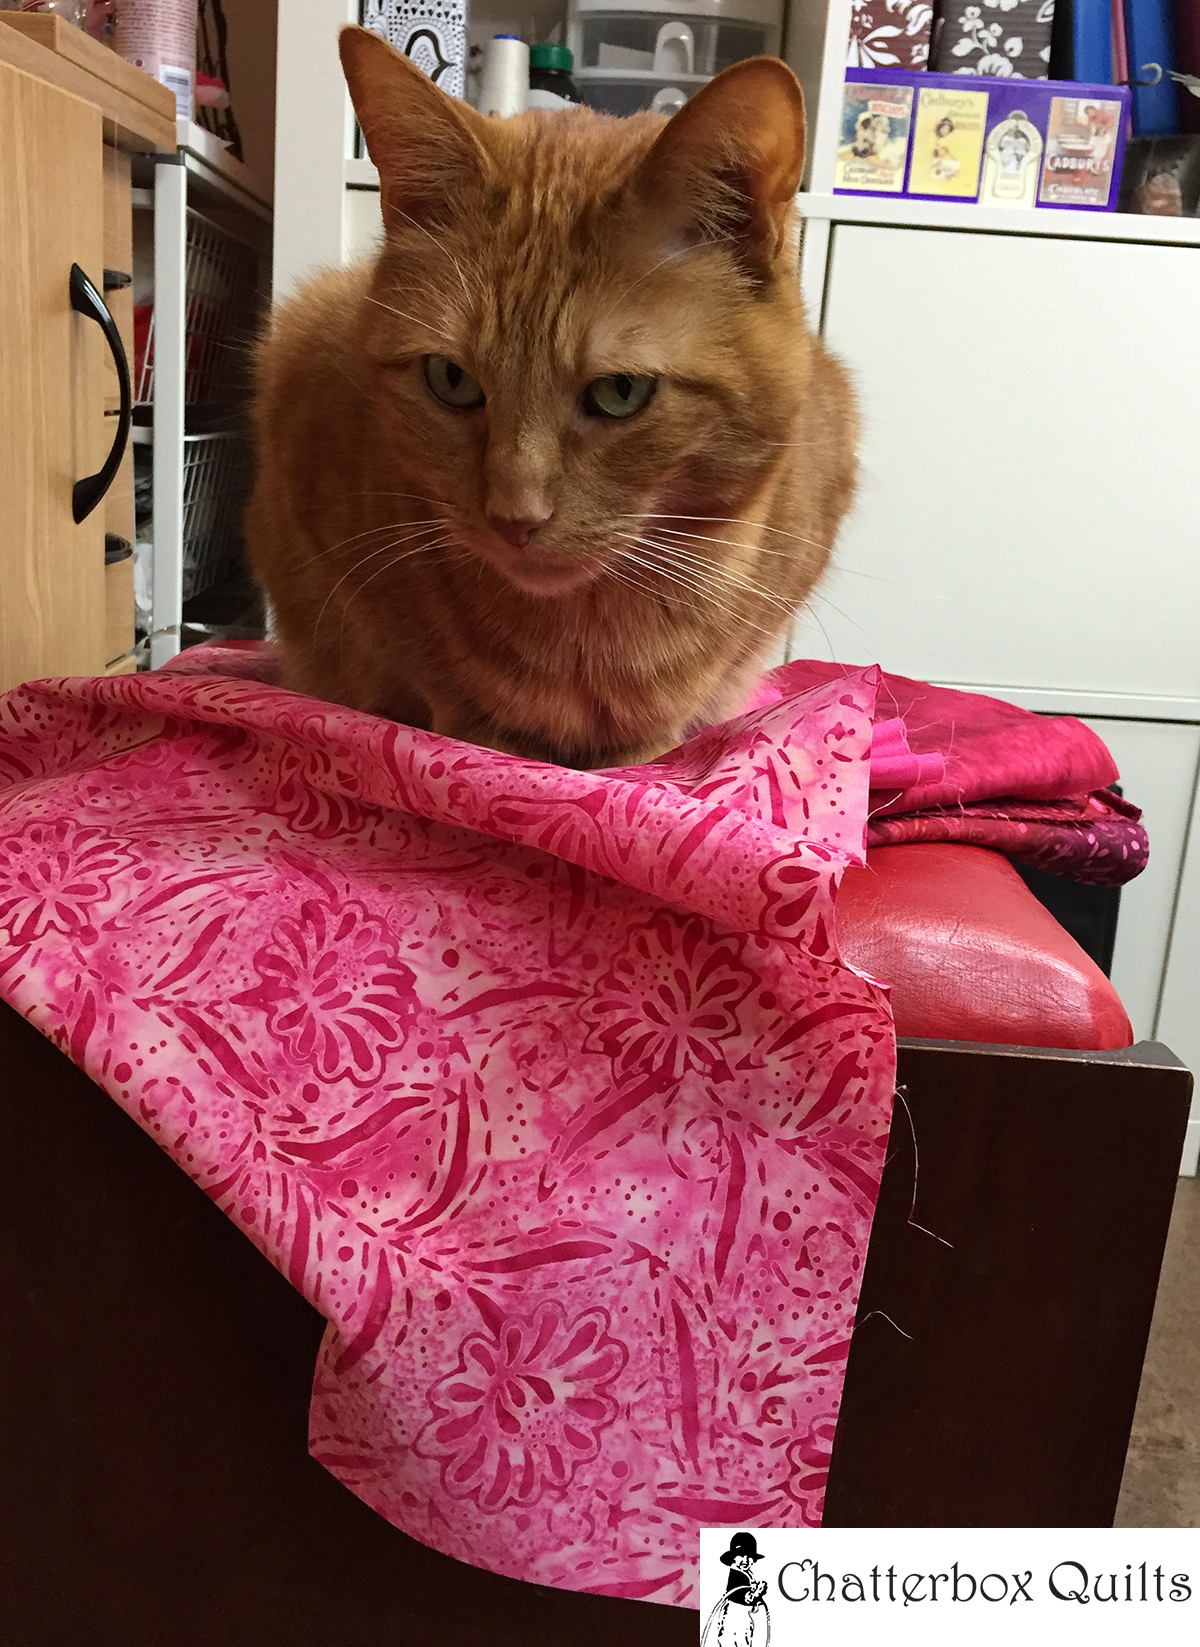 Charlie helped in the fabric selection for this project